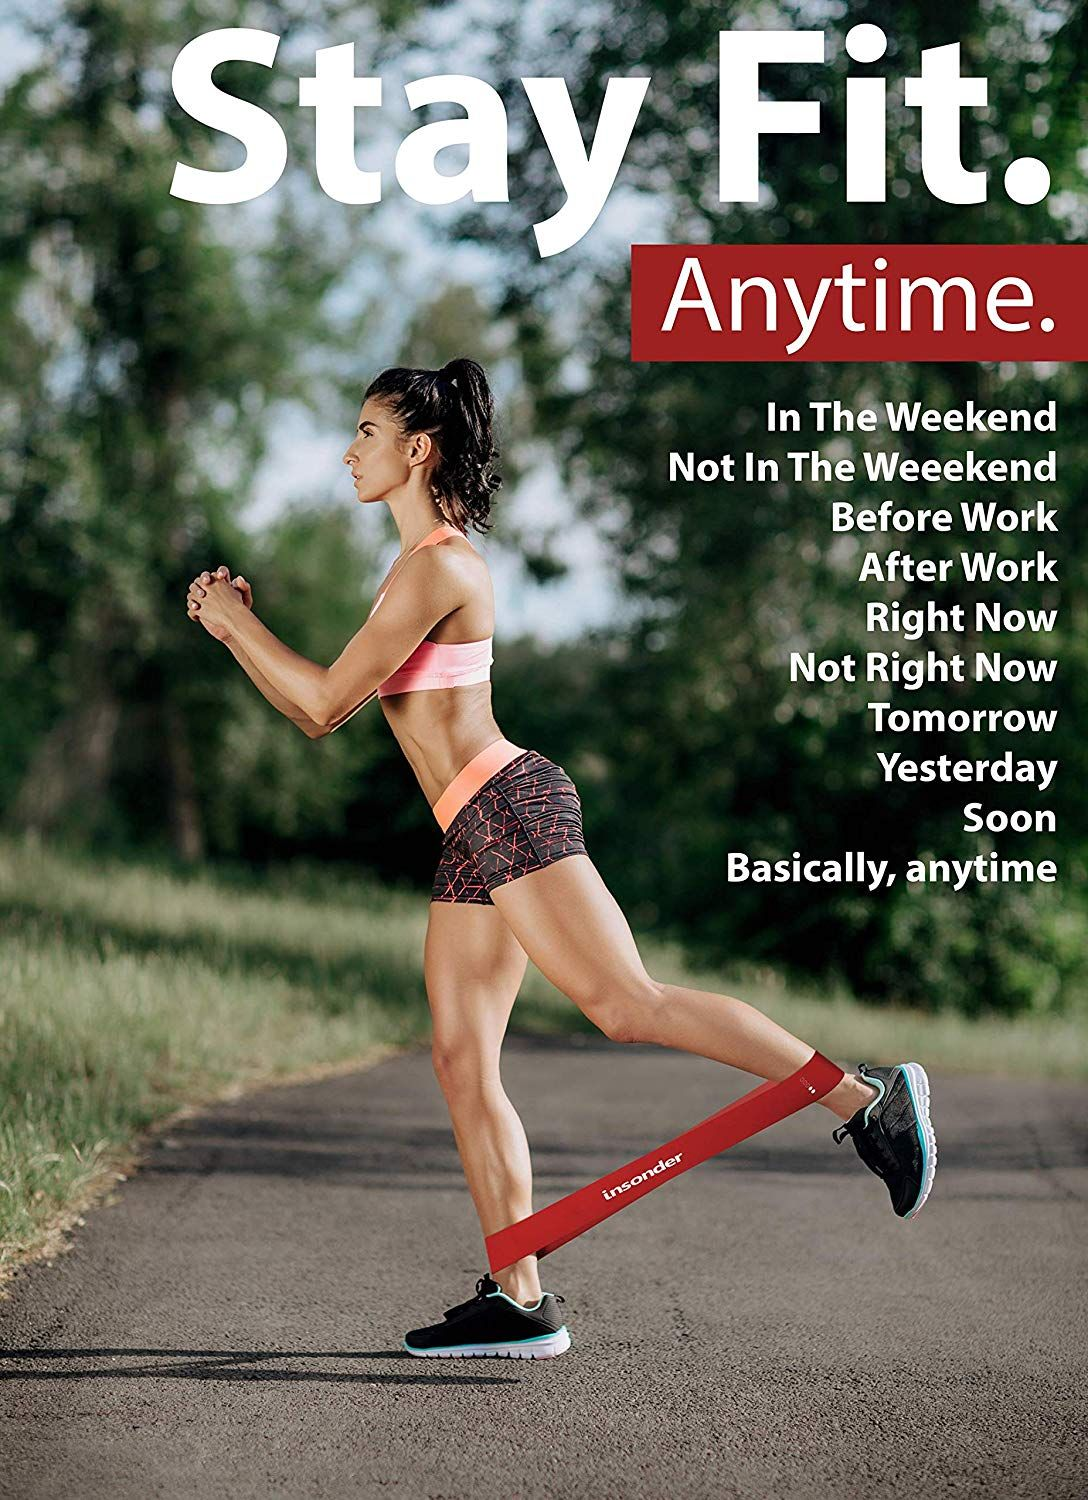 A Loop Resistance Band increases the effectiveness of your exercises enormously. Exercises like jump...